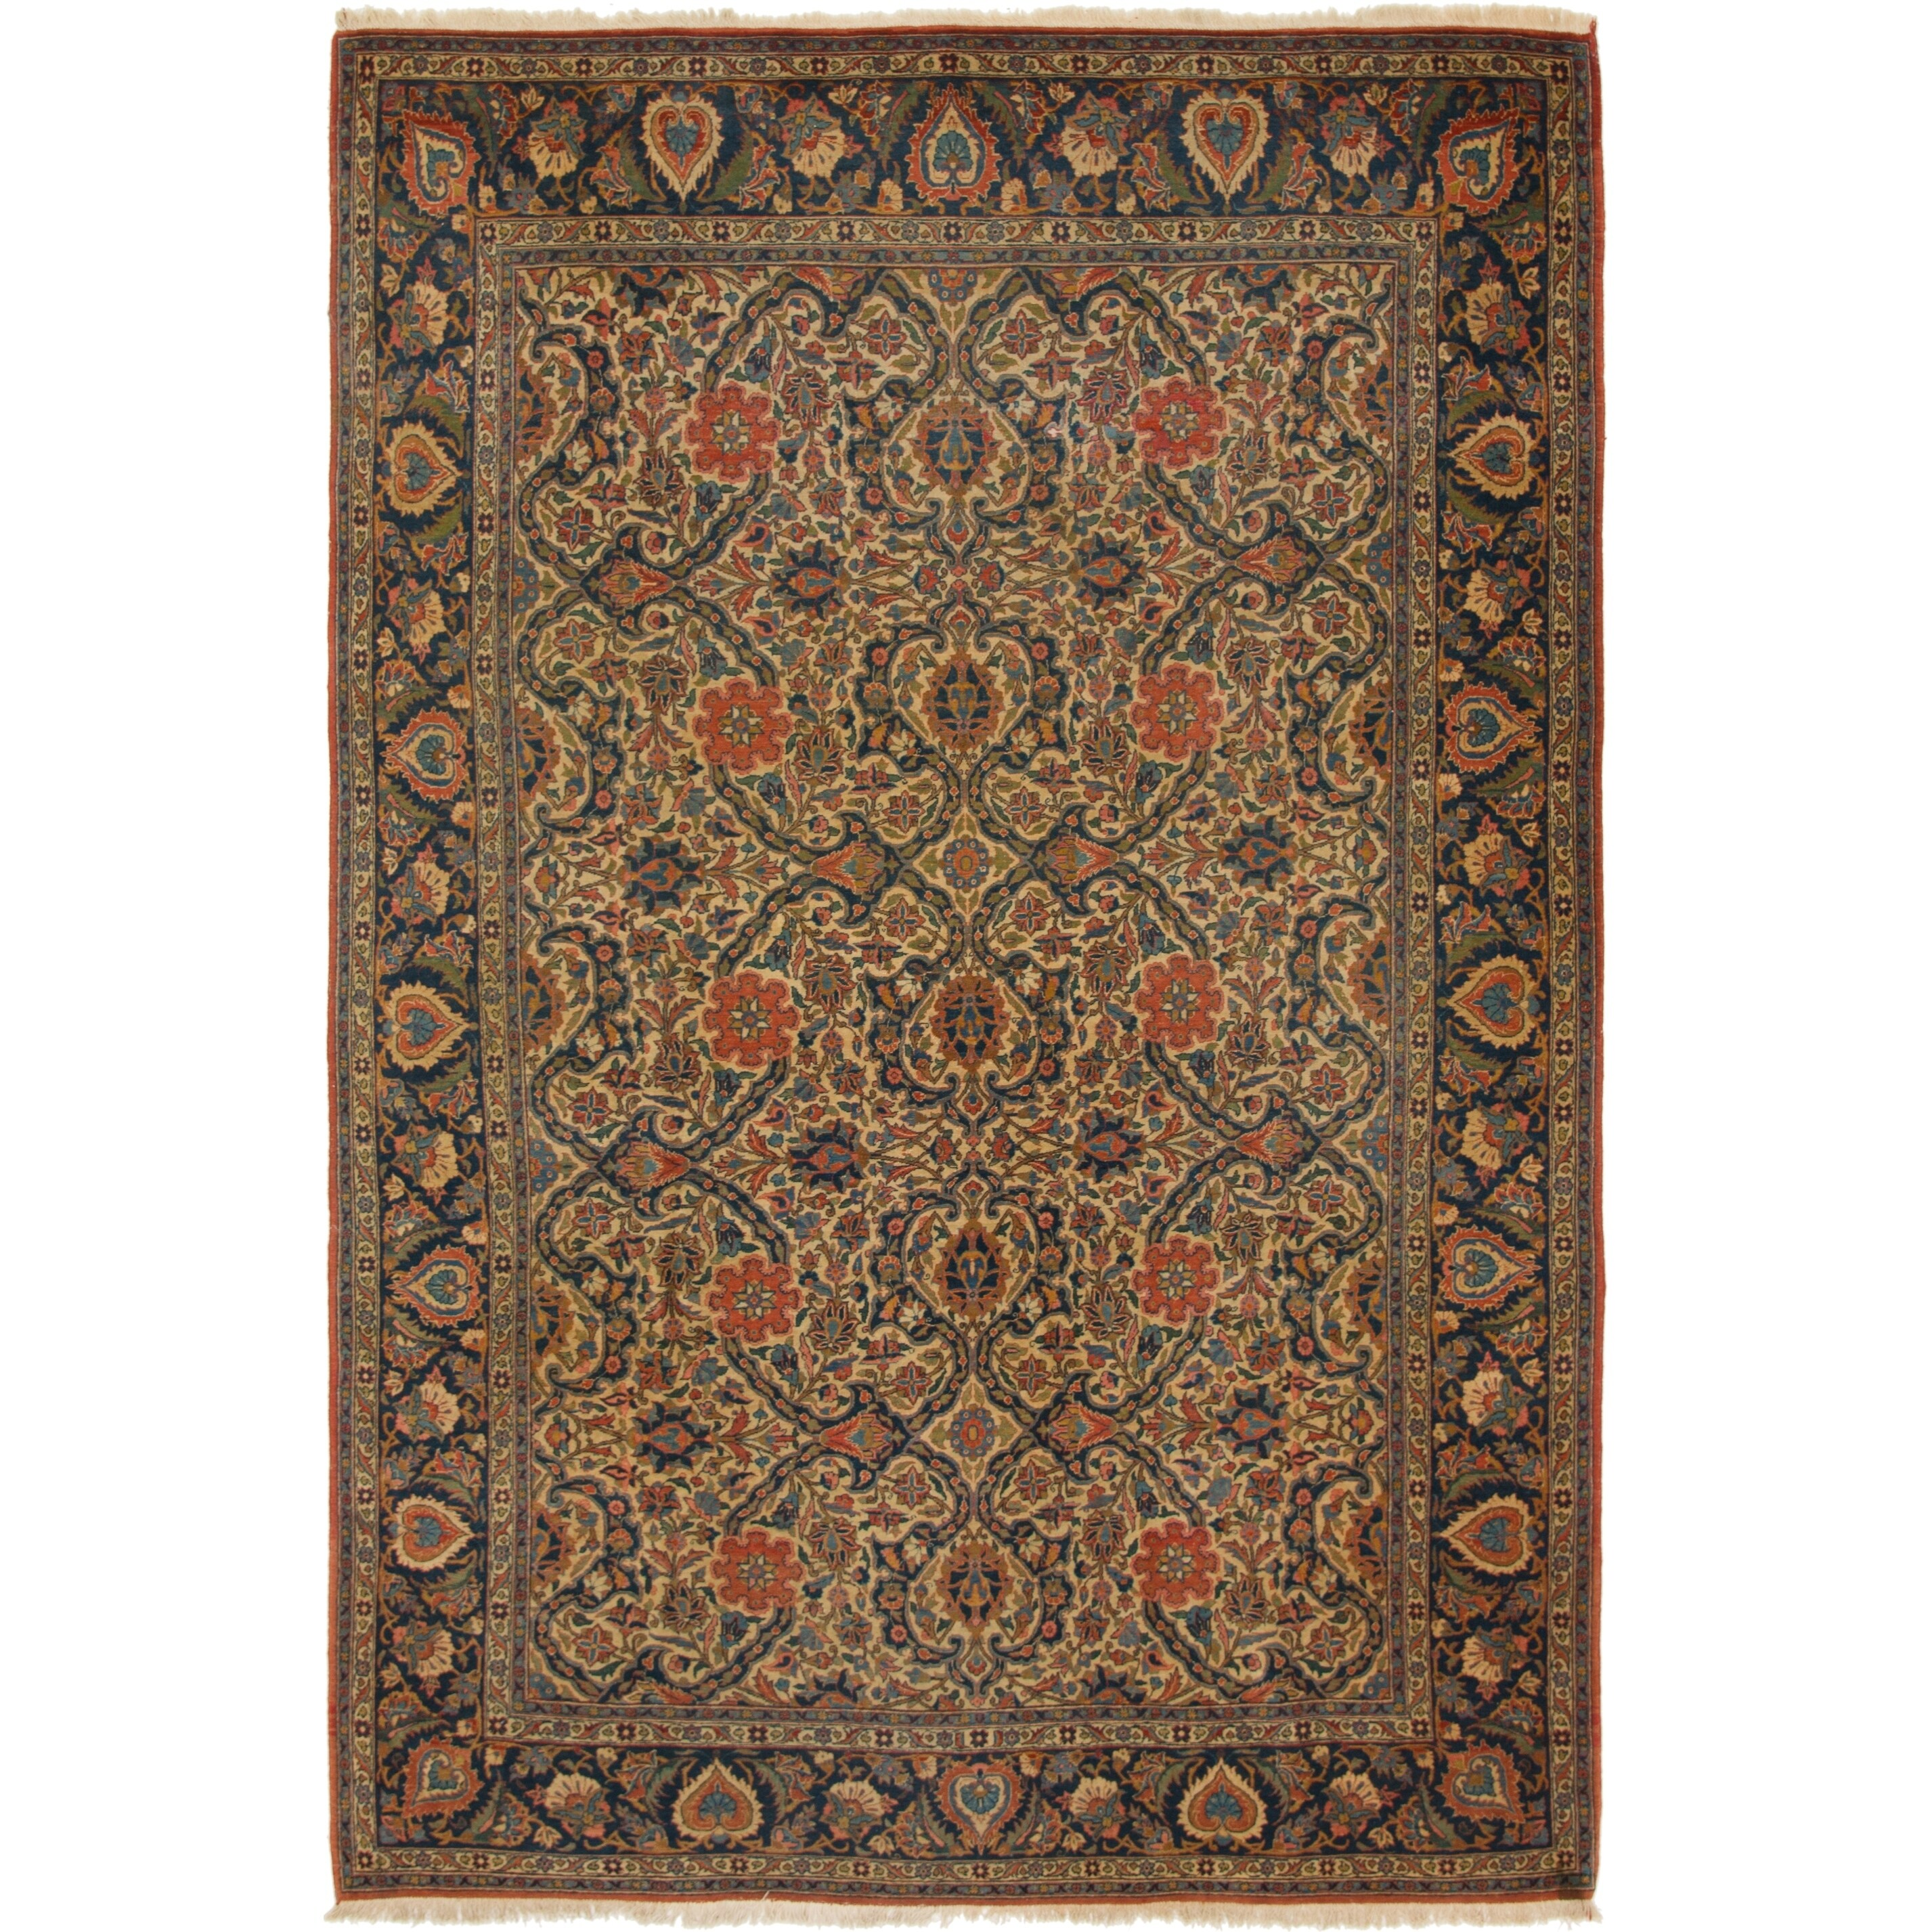 Hand Knotted Kashan Antique Wool Area Rug - 7 3 x 10 9 (Ivory - 7 3 x 10 9)